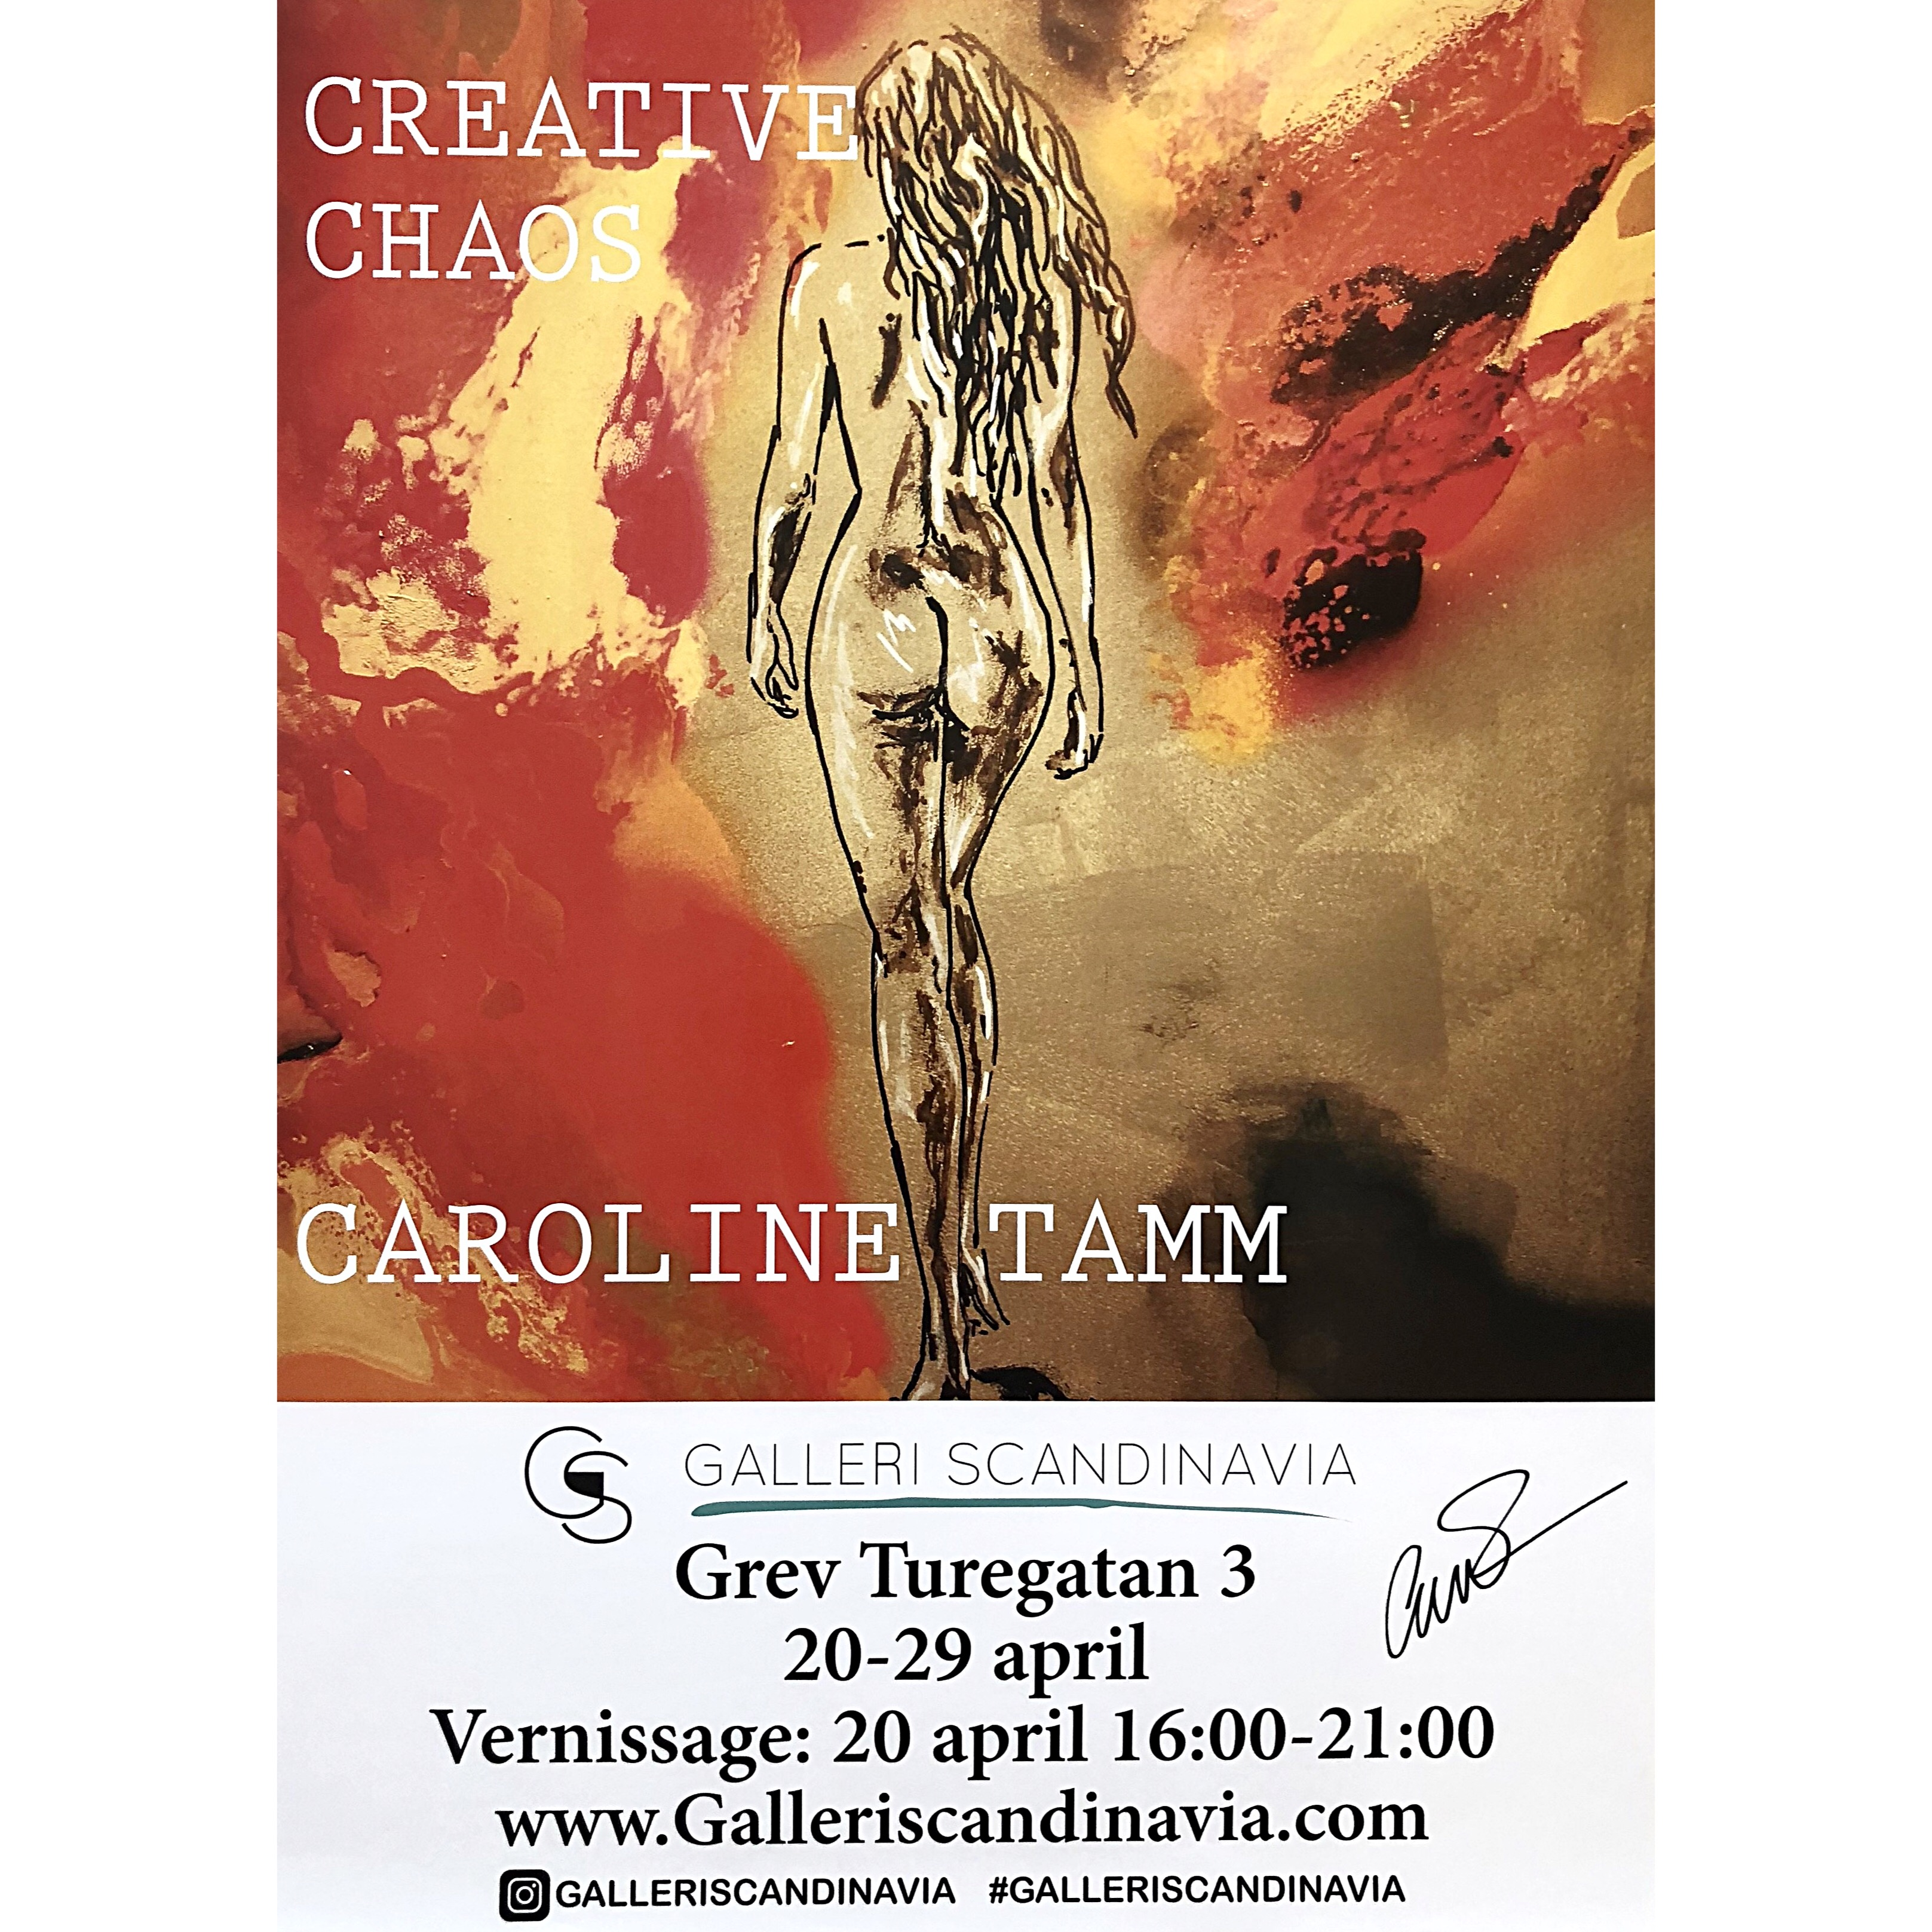 """Creative Chaos"" Signed exhibition-poster by Caroline Tamm. 50 x 70 cm"